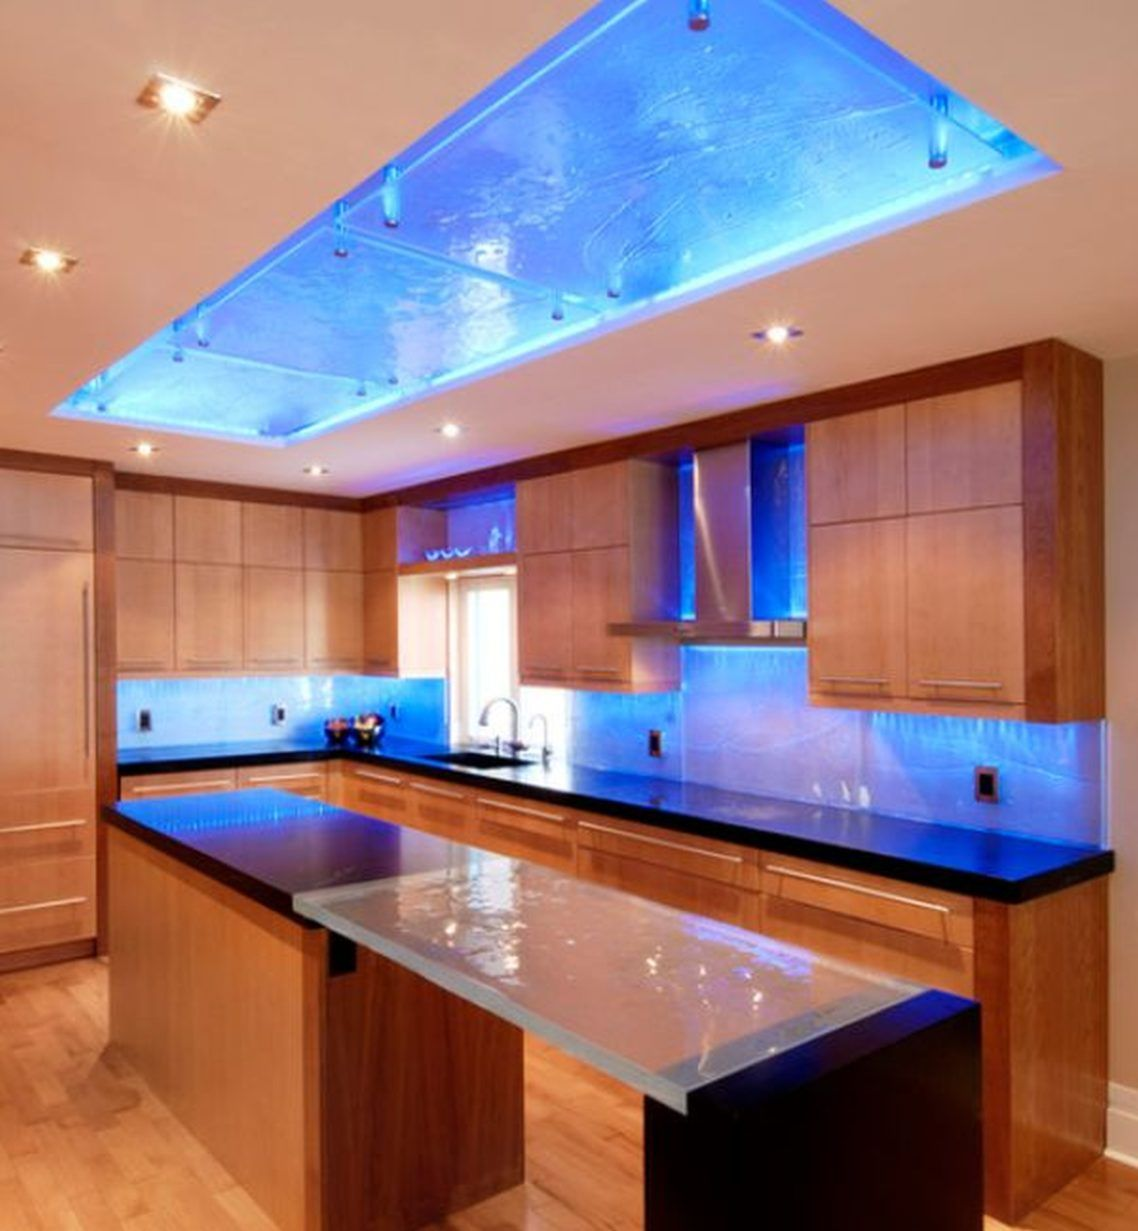 Cool Kitchen Recessed Lighting Design Ideas: Very Cool Colored Cove Lighting Above The Kitchen Island